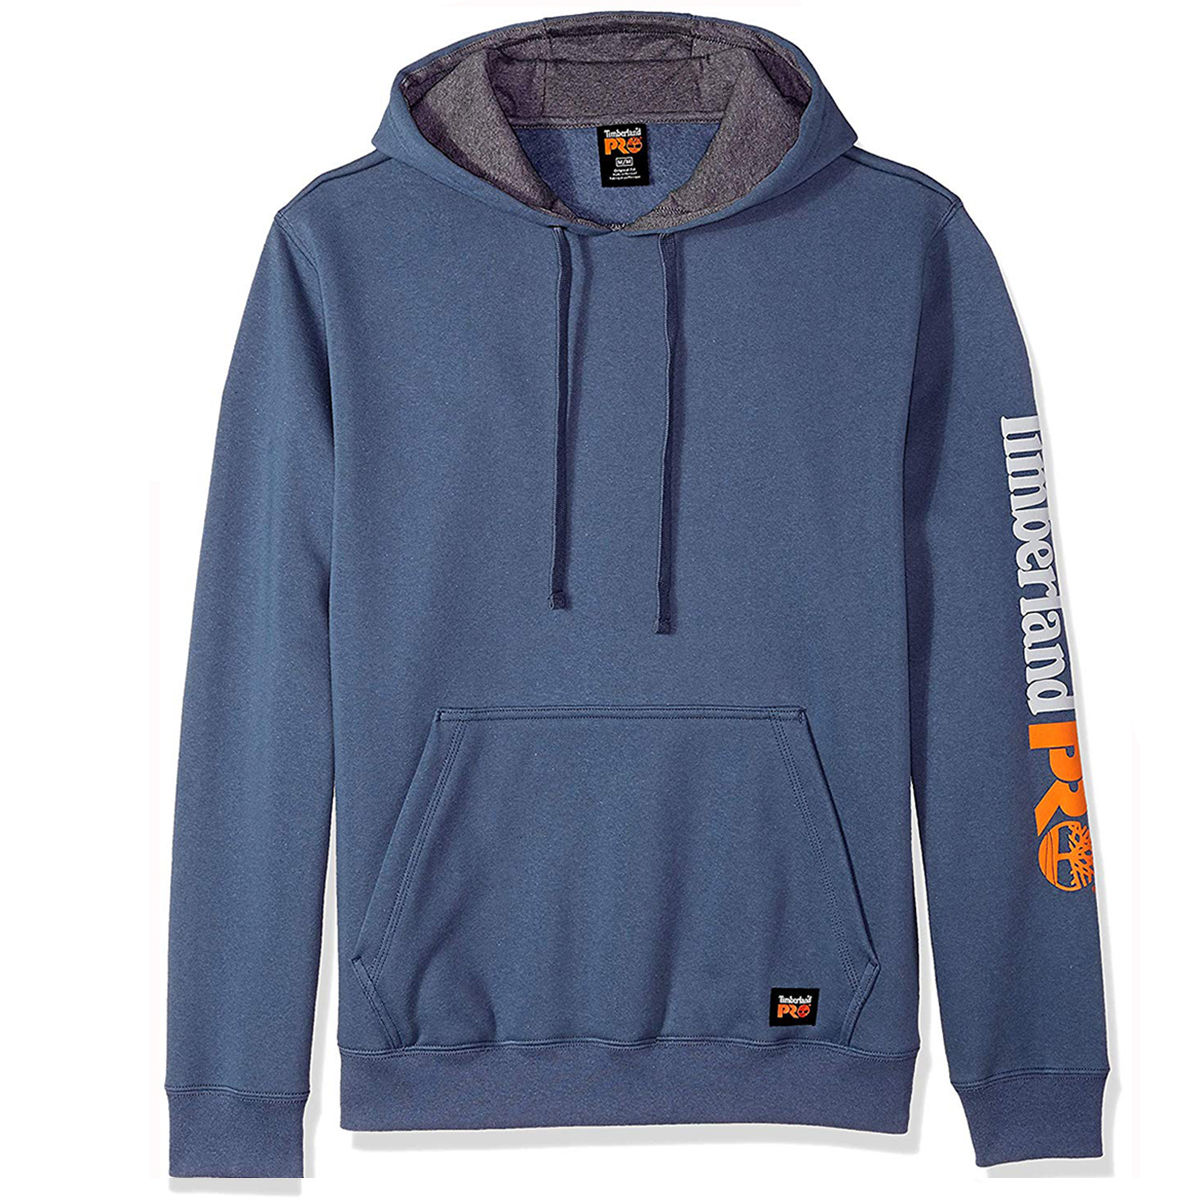 Timberland Pro Men's Hood Honcho Pullover Hoodie - Blue, L